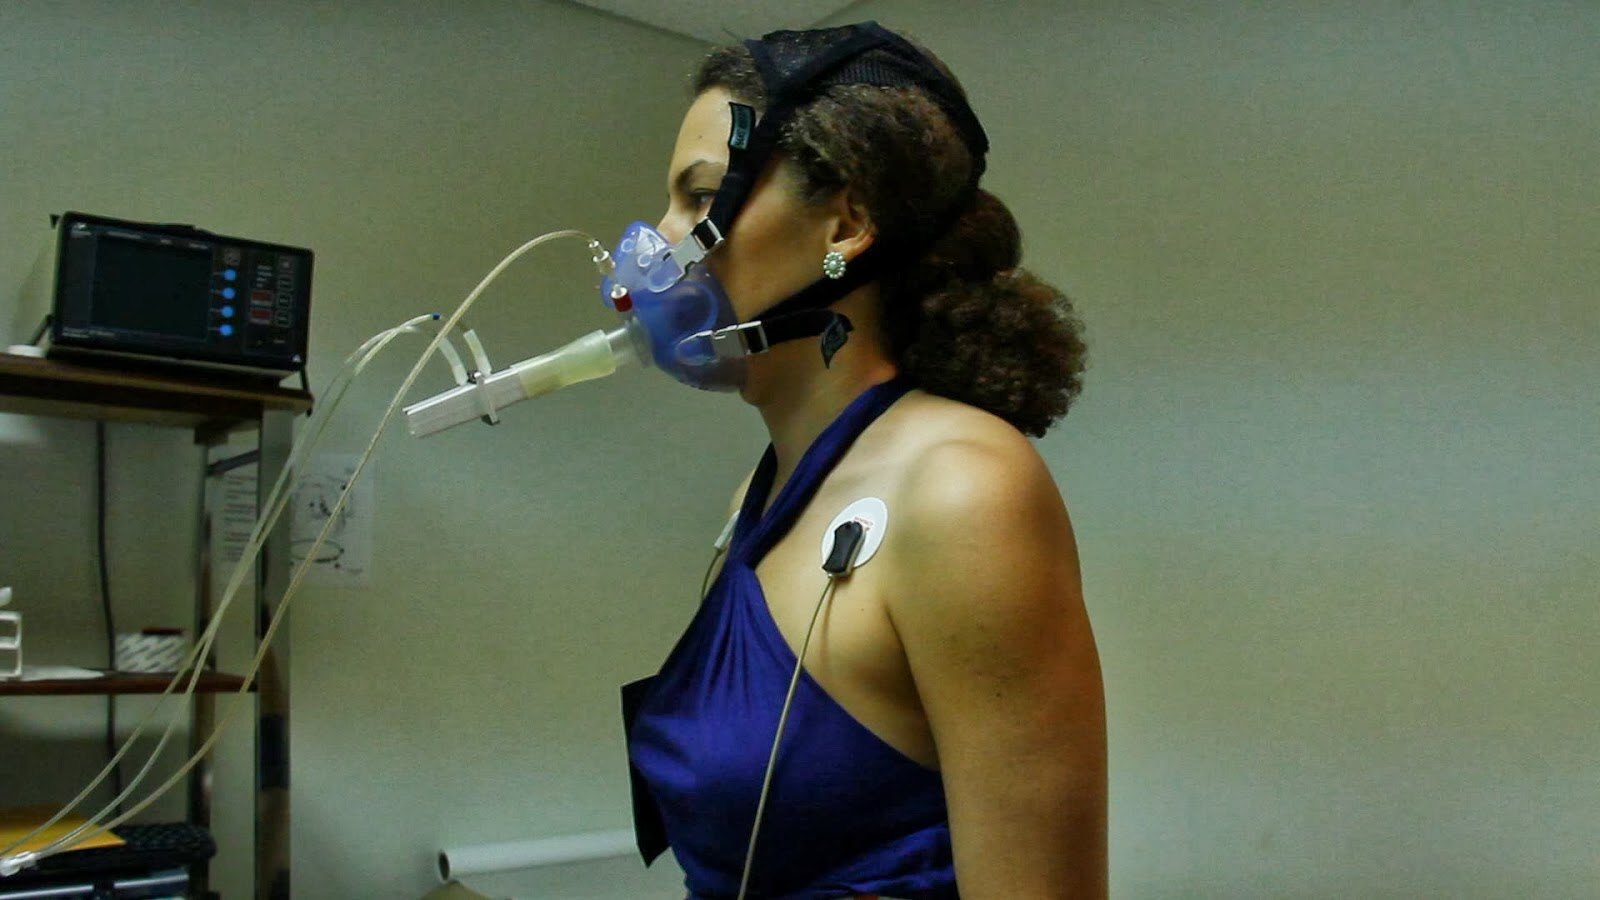 Canary In A Coal Mine What I Learned From My Vo2 Max Test That A Doctor Should Have Been Able